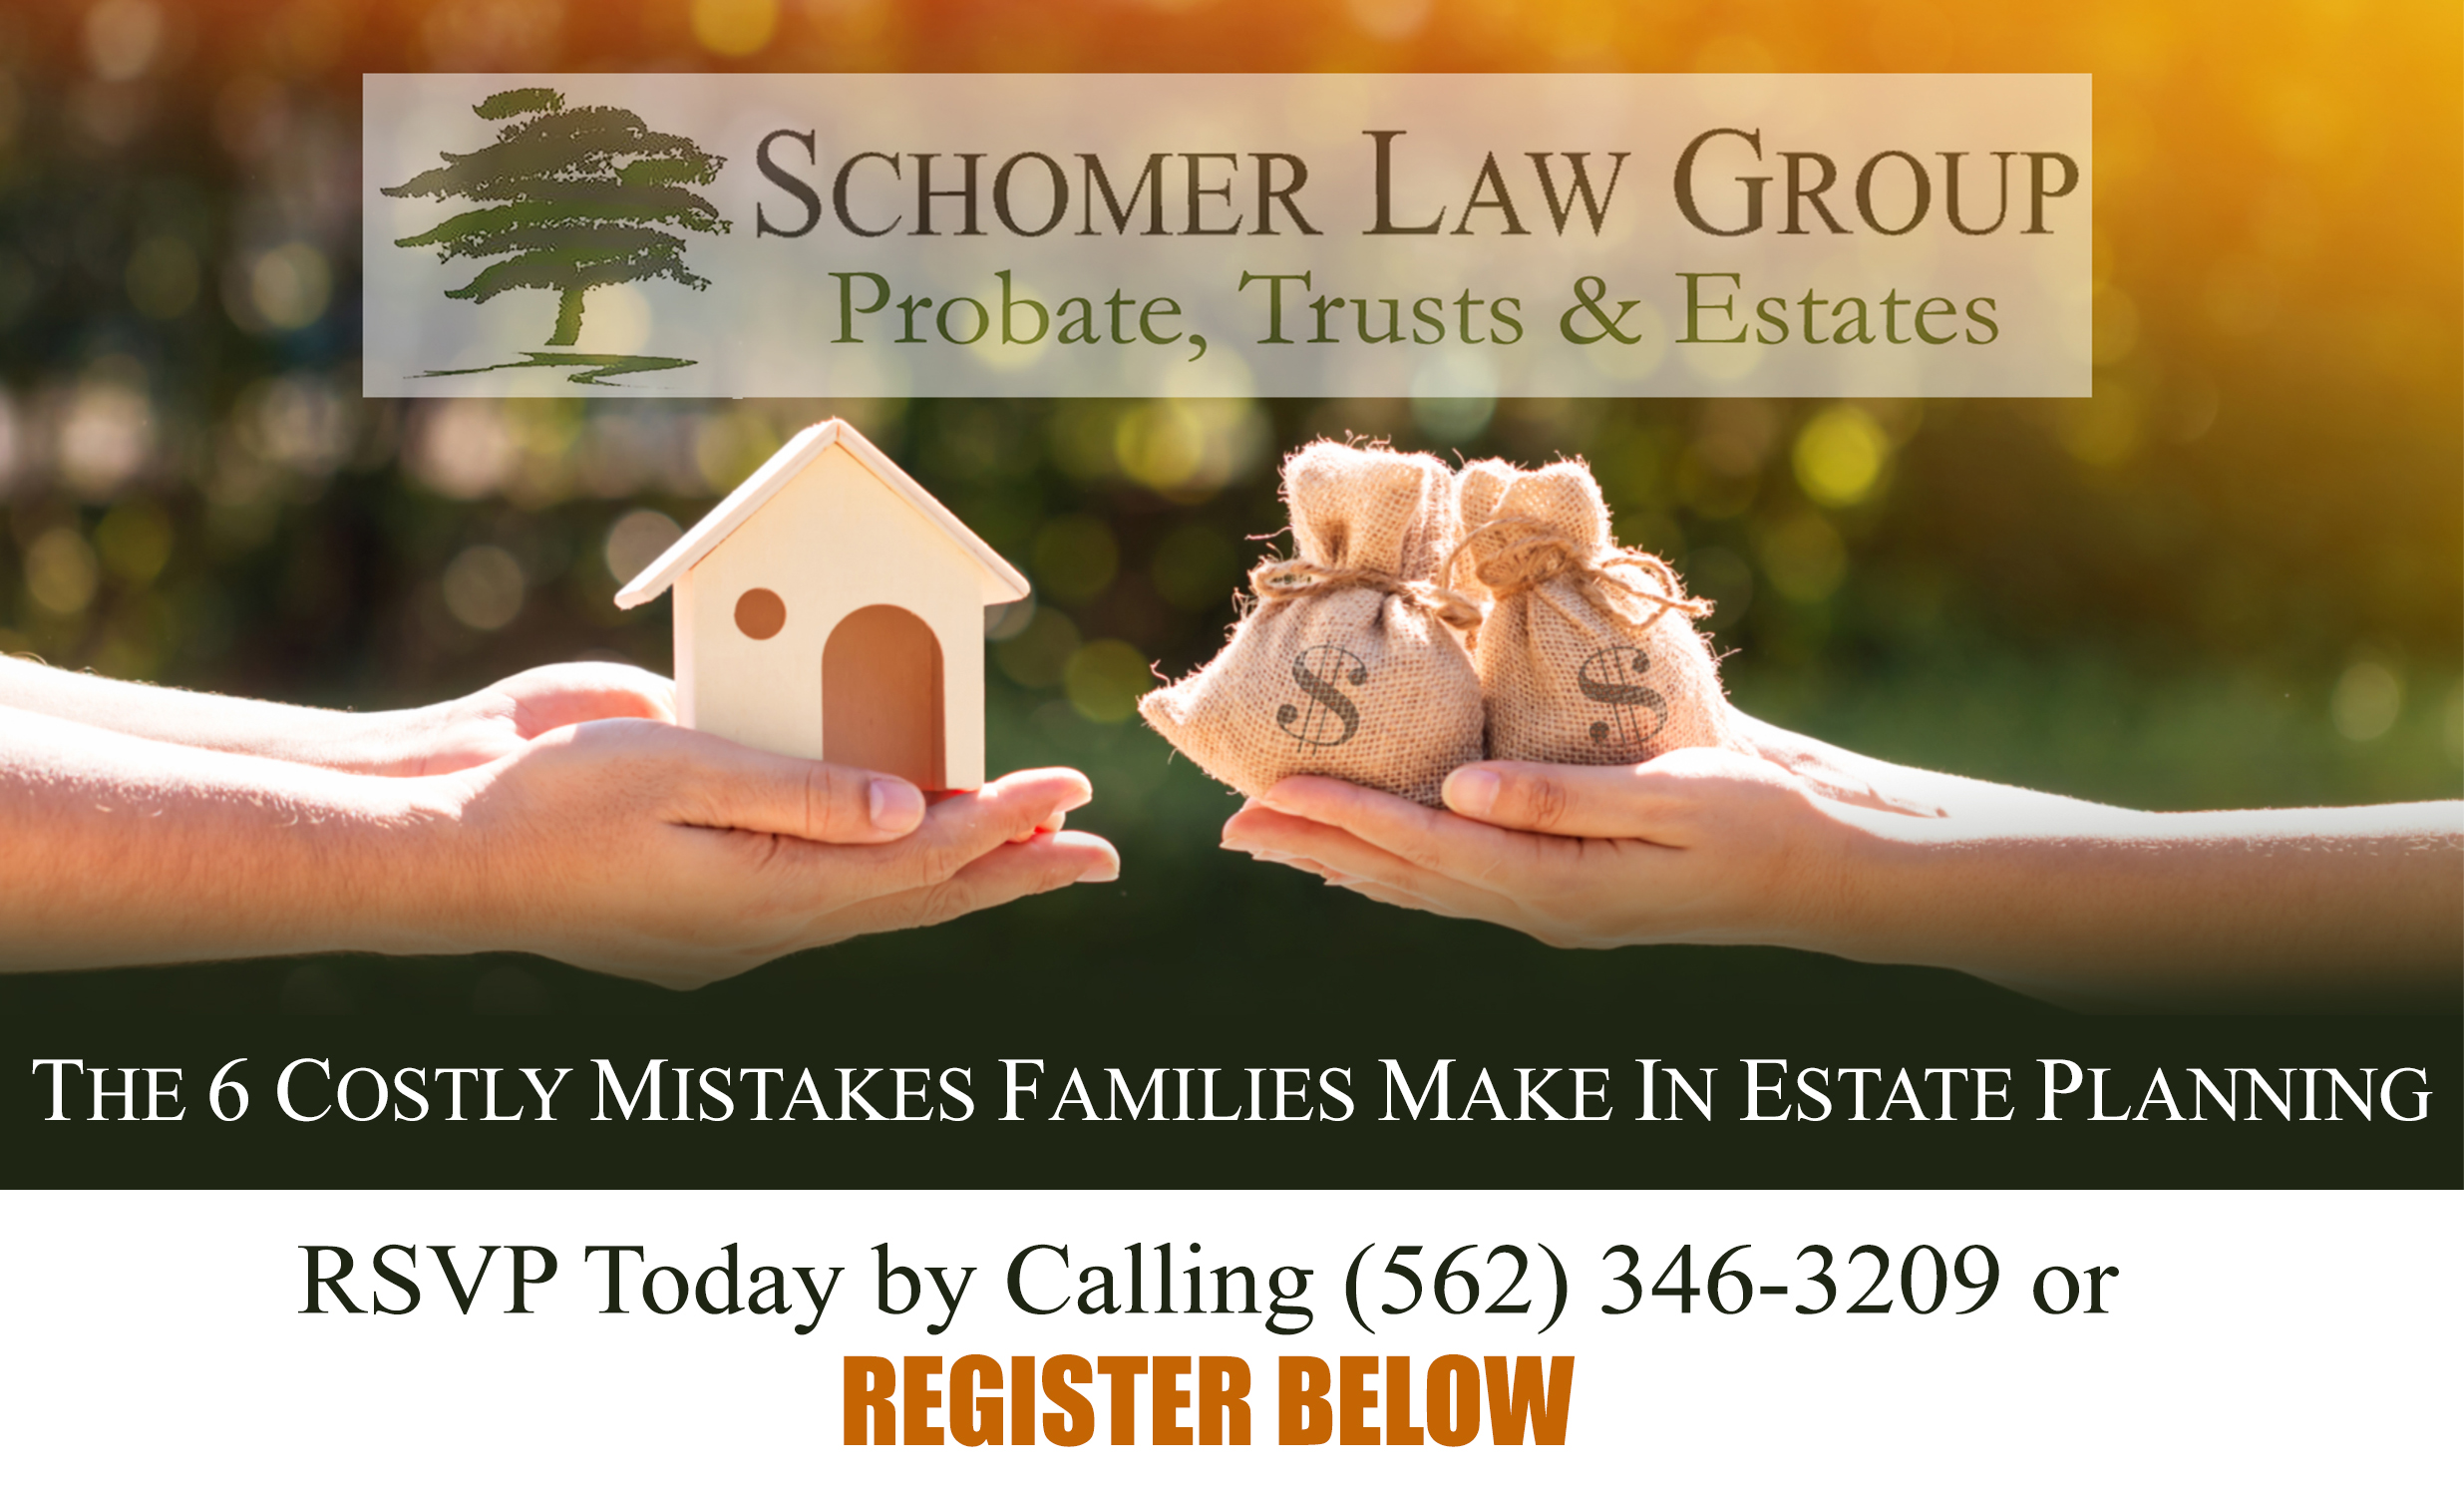 The 6 Costly Mistakes Families Make in Estate Planning